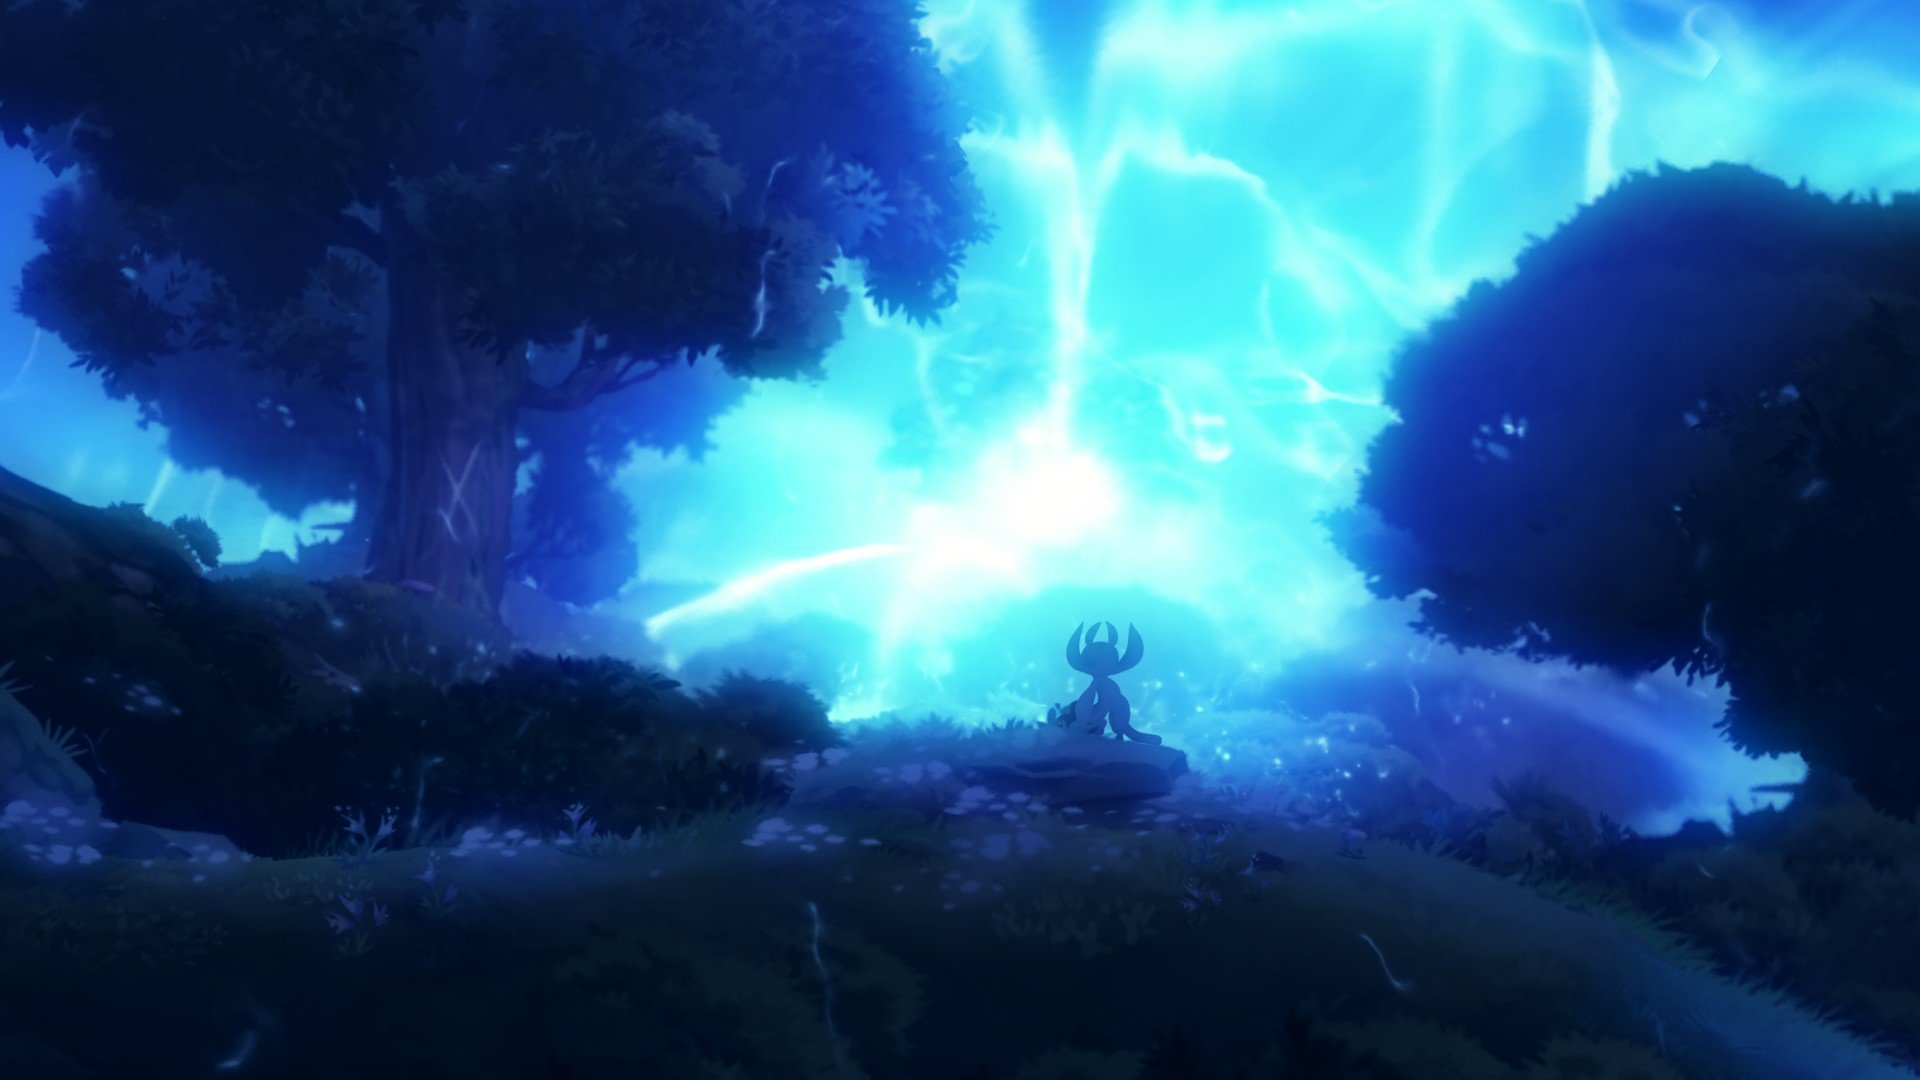 HQ Ori and the Blind Forest Wallpaper | Full HD Pictures